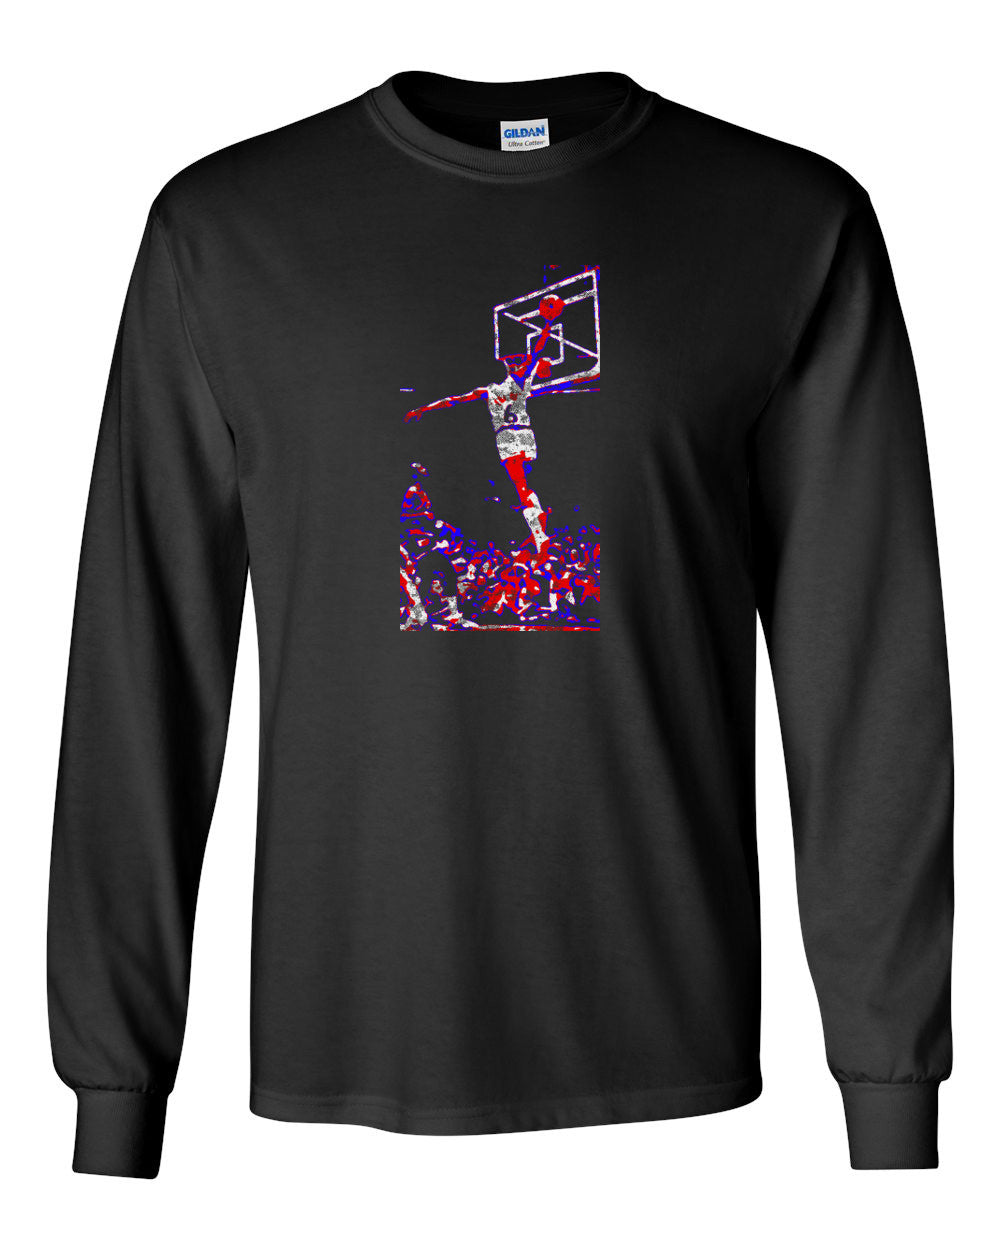 The Dr. MENS Long Sleeve Heavy Cotton T-Shirt